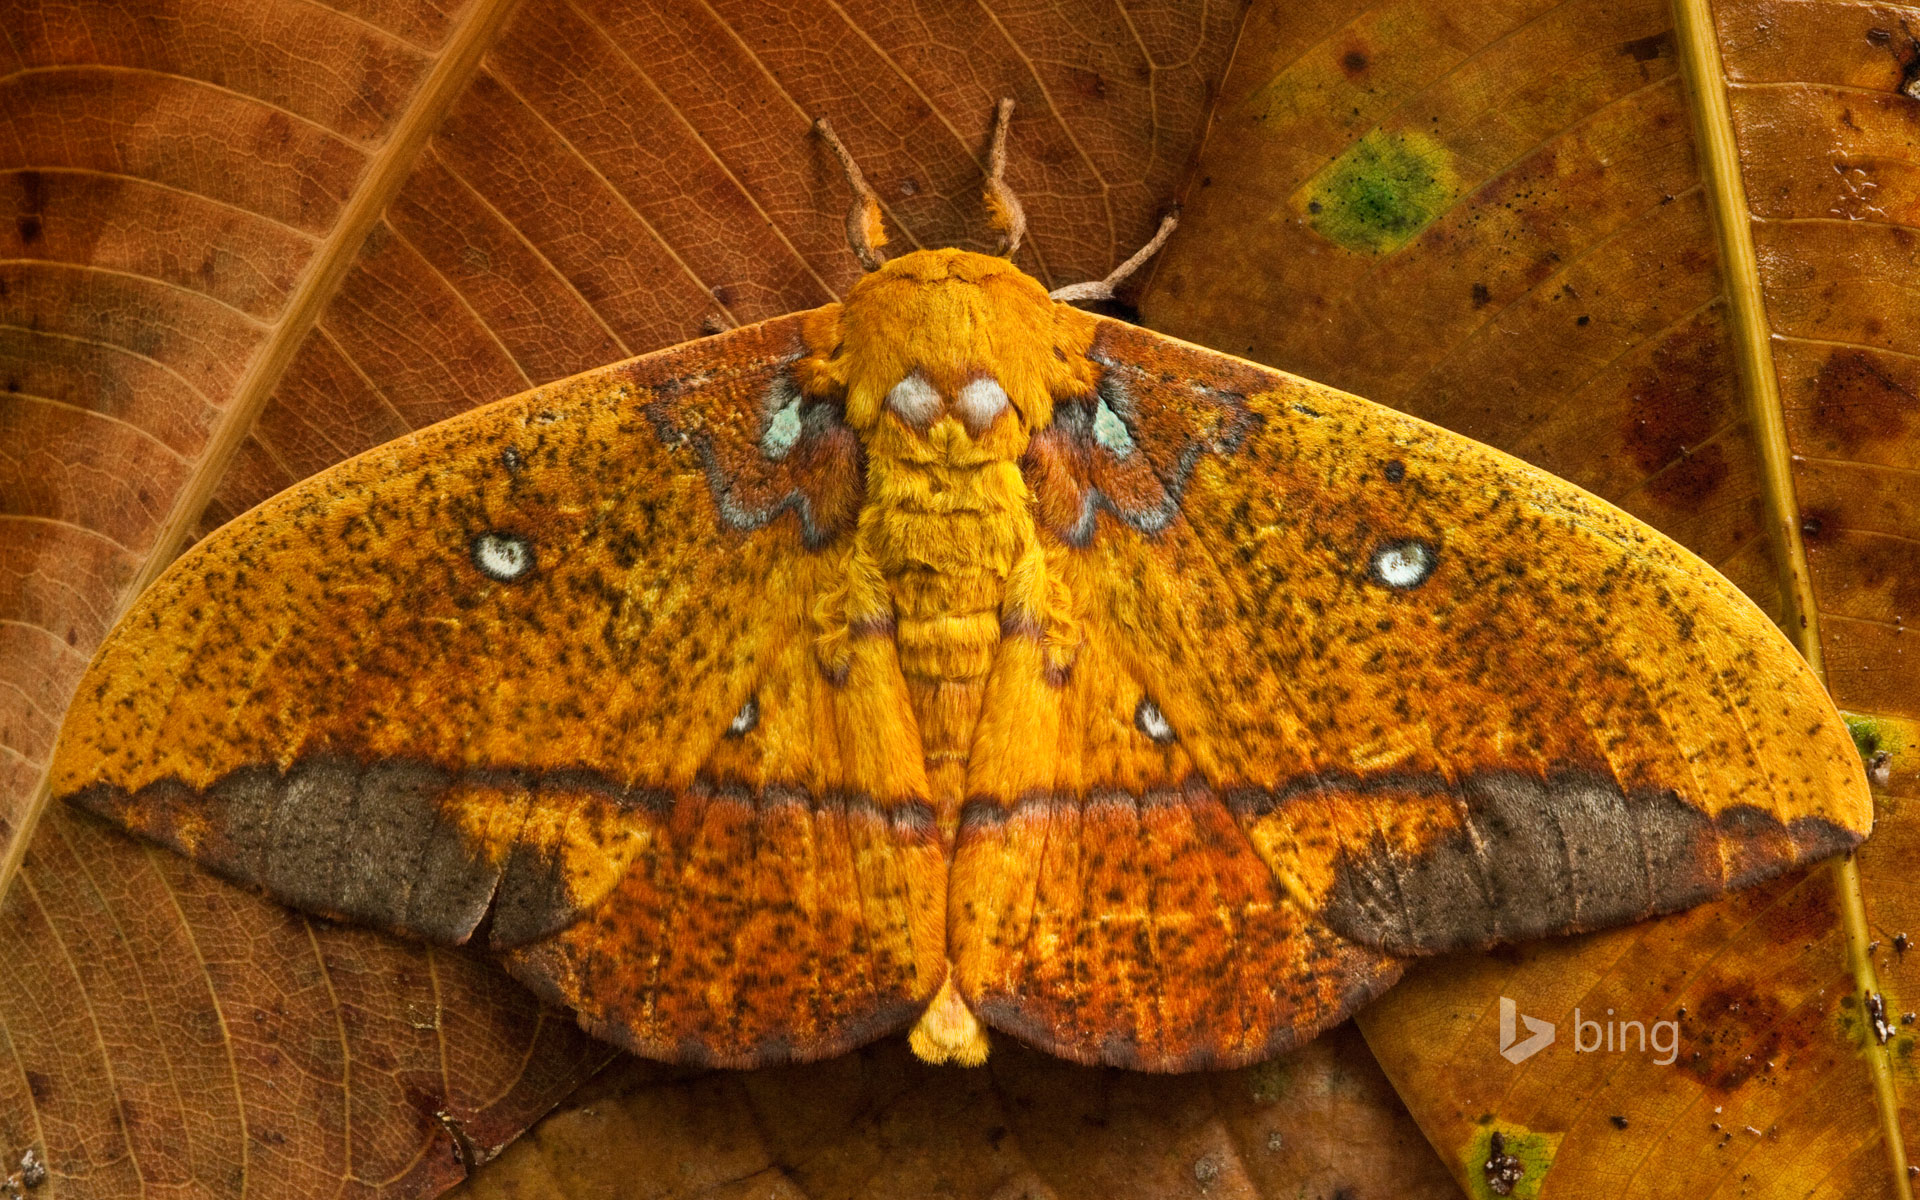 Saturniid moth, Yasuni National Park, Ecuador